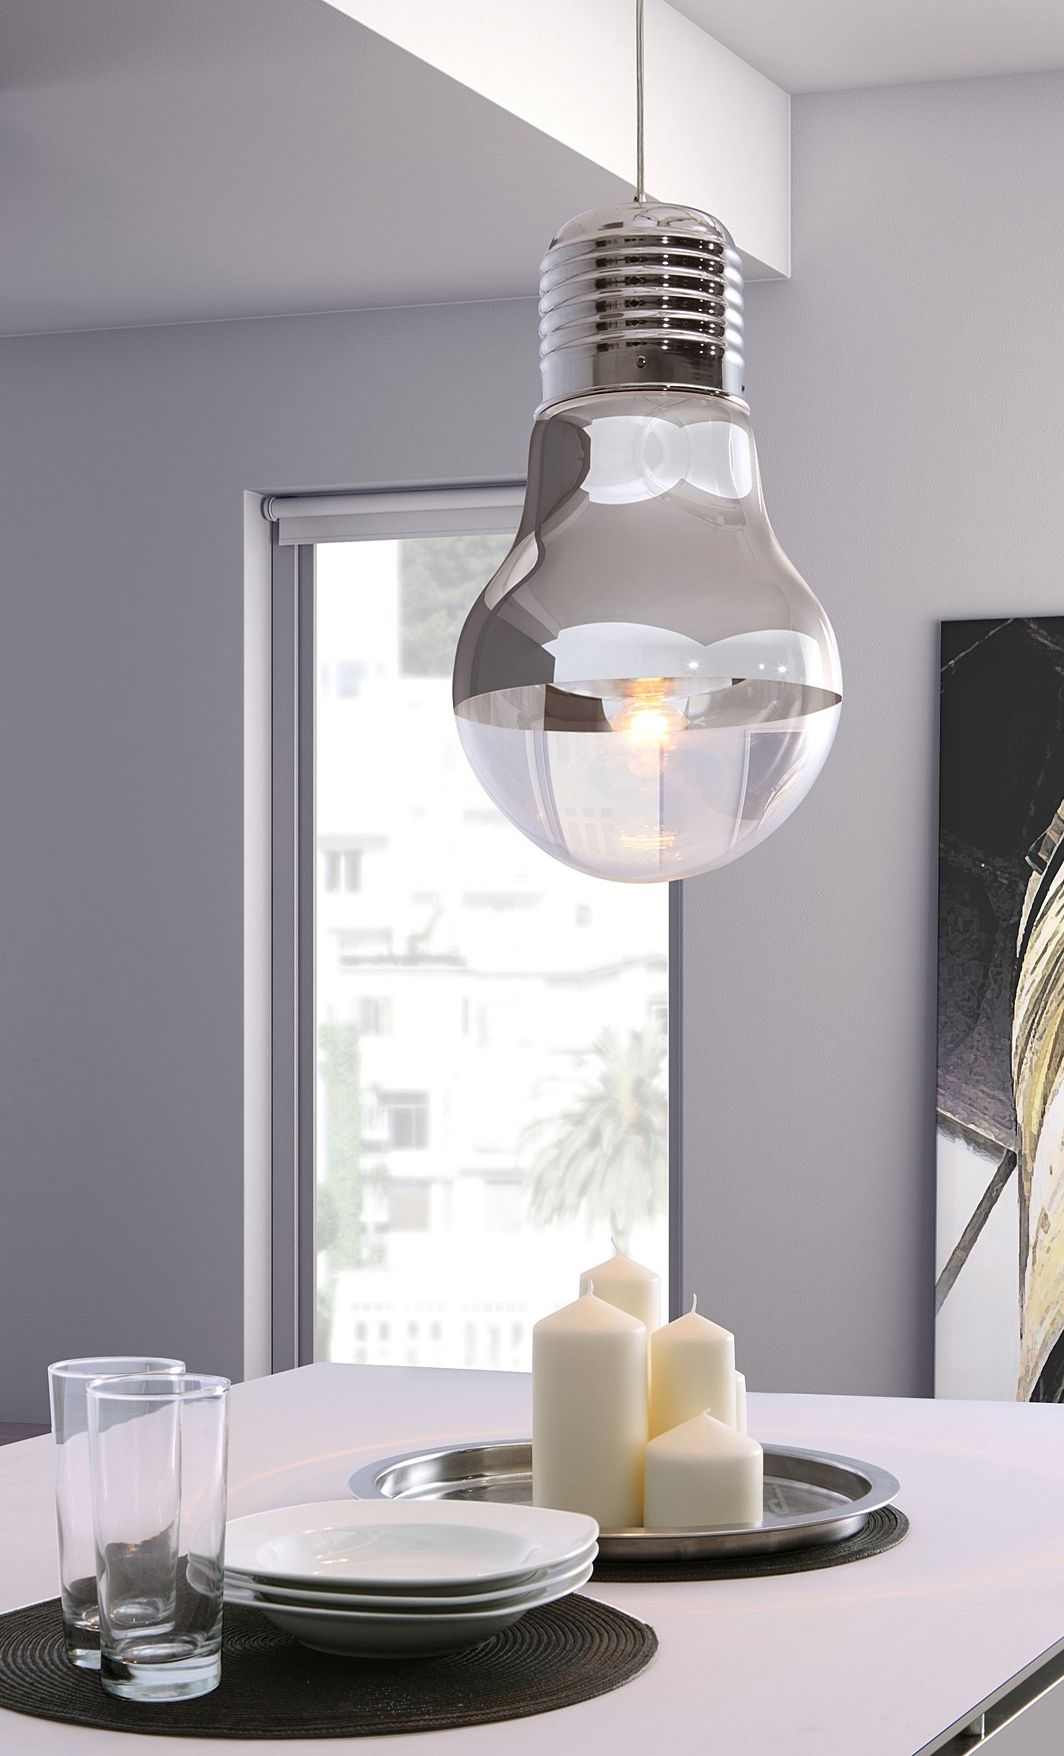 Ceiling Lamp That Looks Like A Giant Light Bulb Product Design